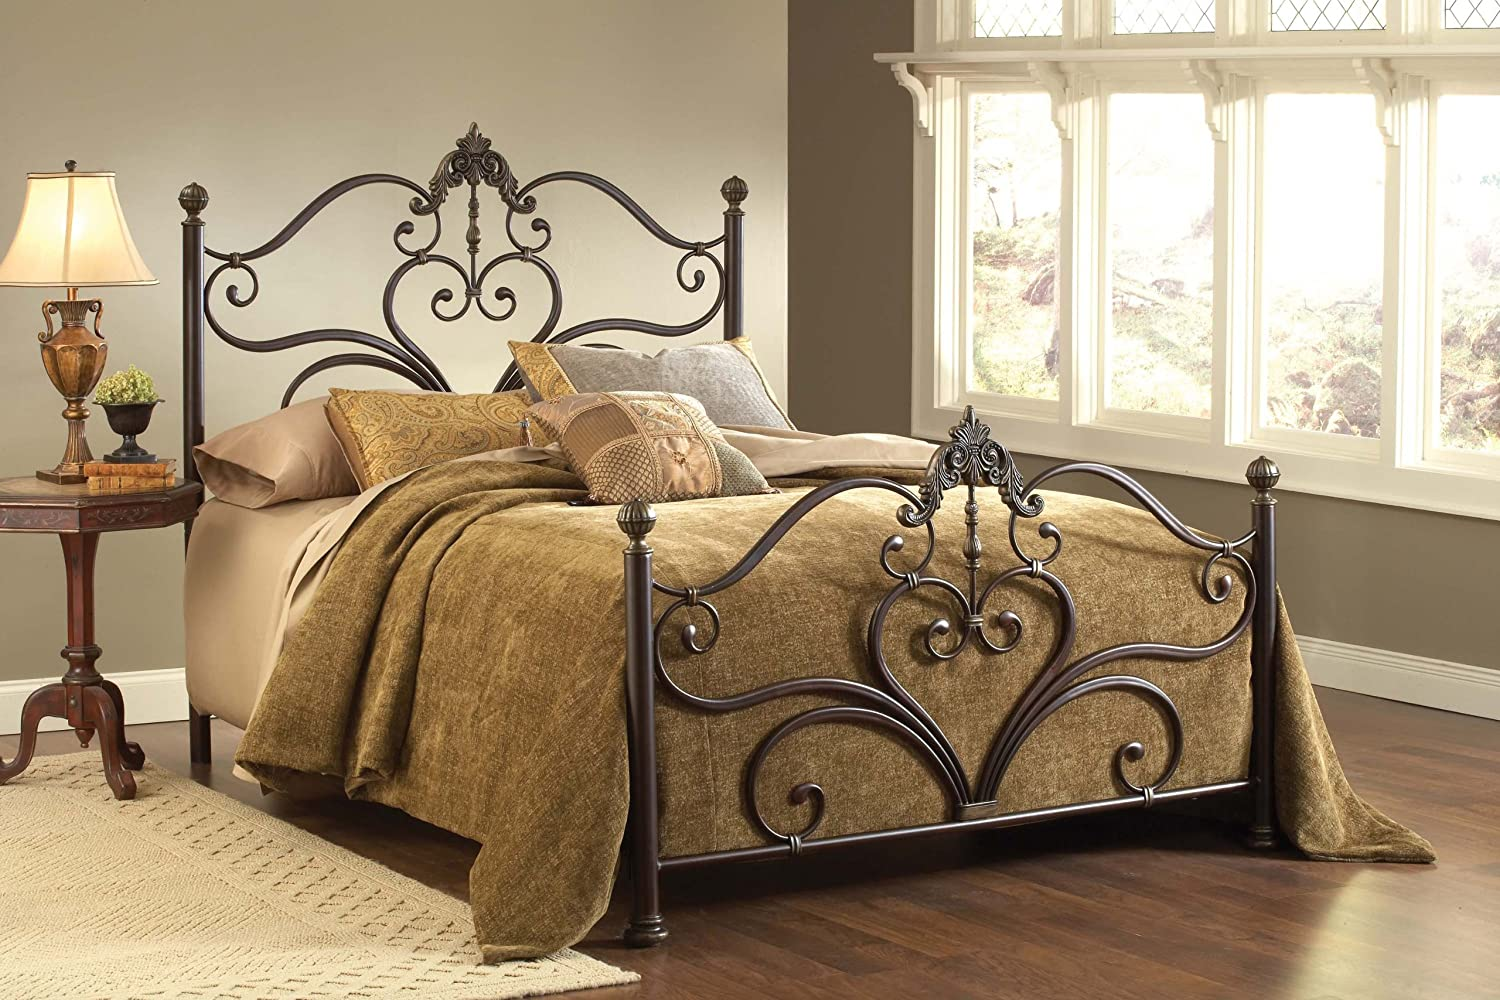 High Quality Amazon.com: Hillsdale Furniture 1756BQR Newton Bed Set With Rails, Queen,  Antique Brown Highlight: Kitchen U0026 Dining